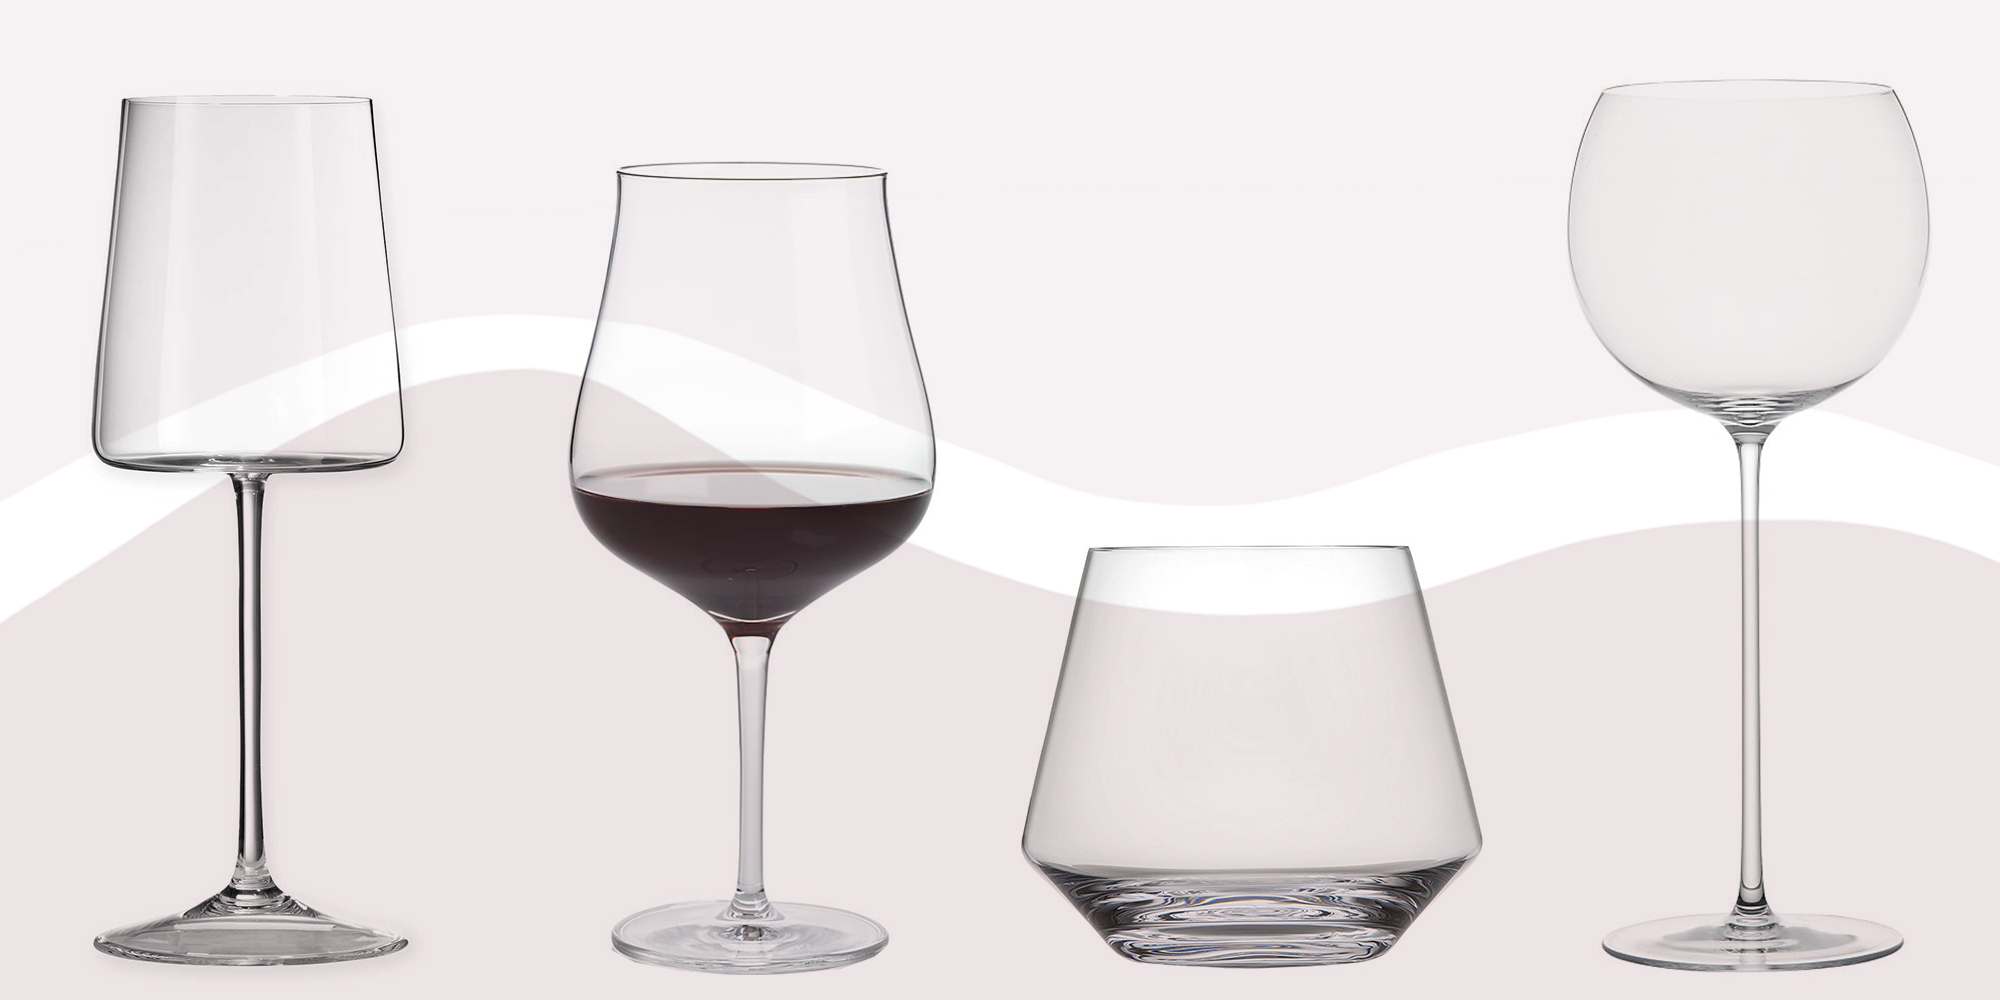 Big Red Wine Glasses 10 Best Red Wine Glasses For 2018 Large Red Wine Glasses